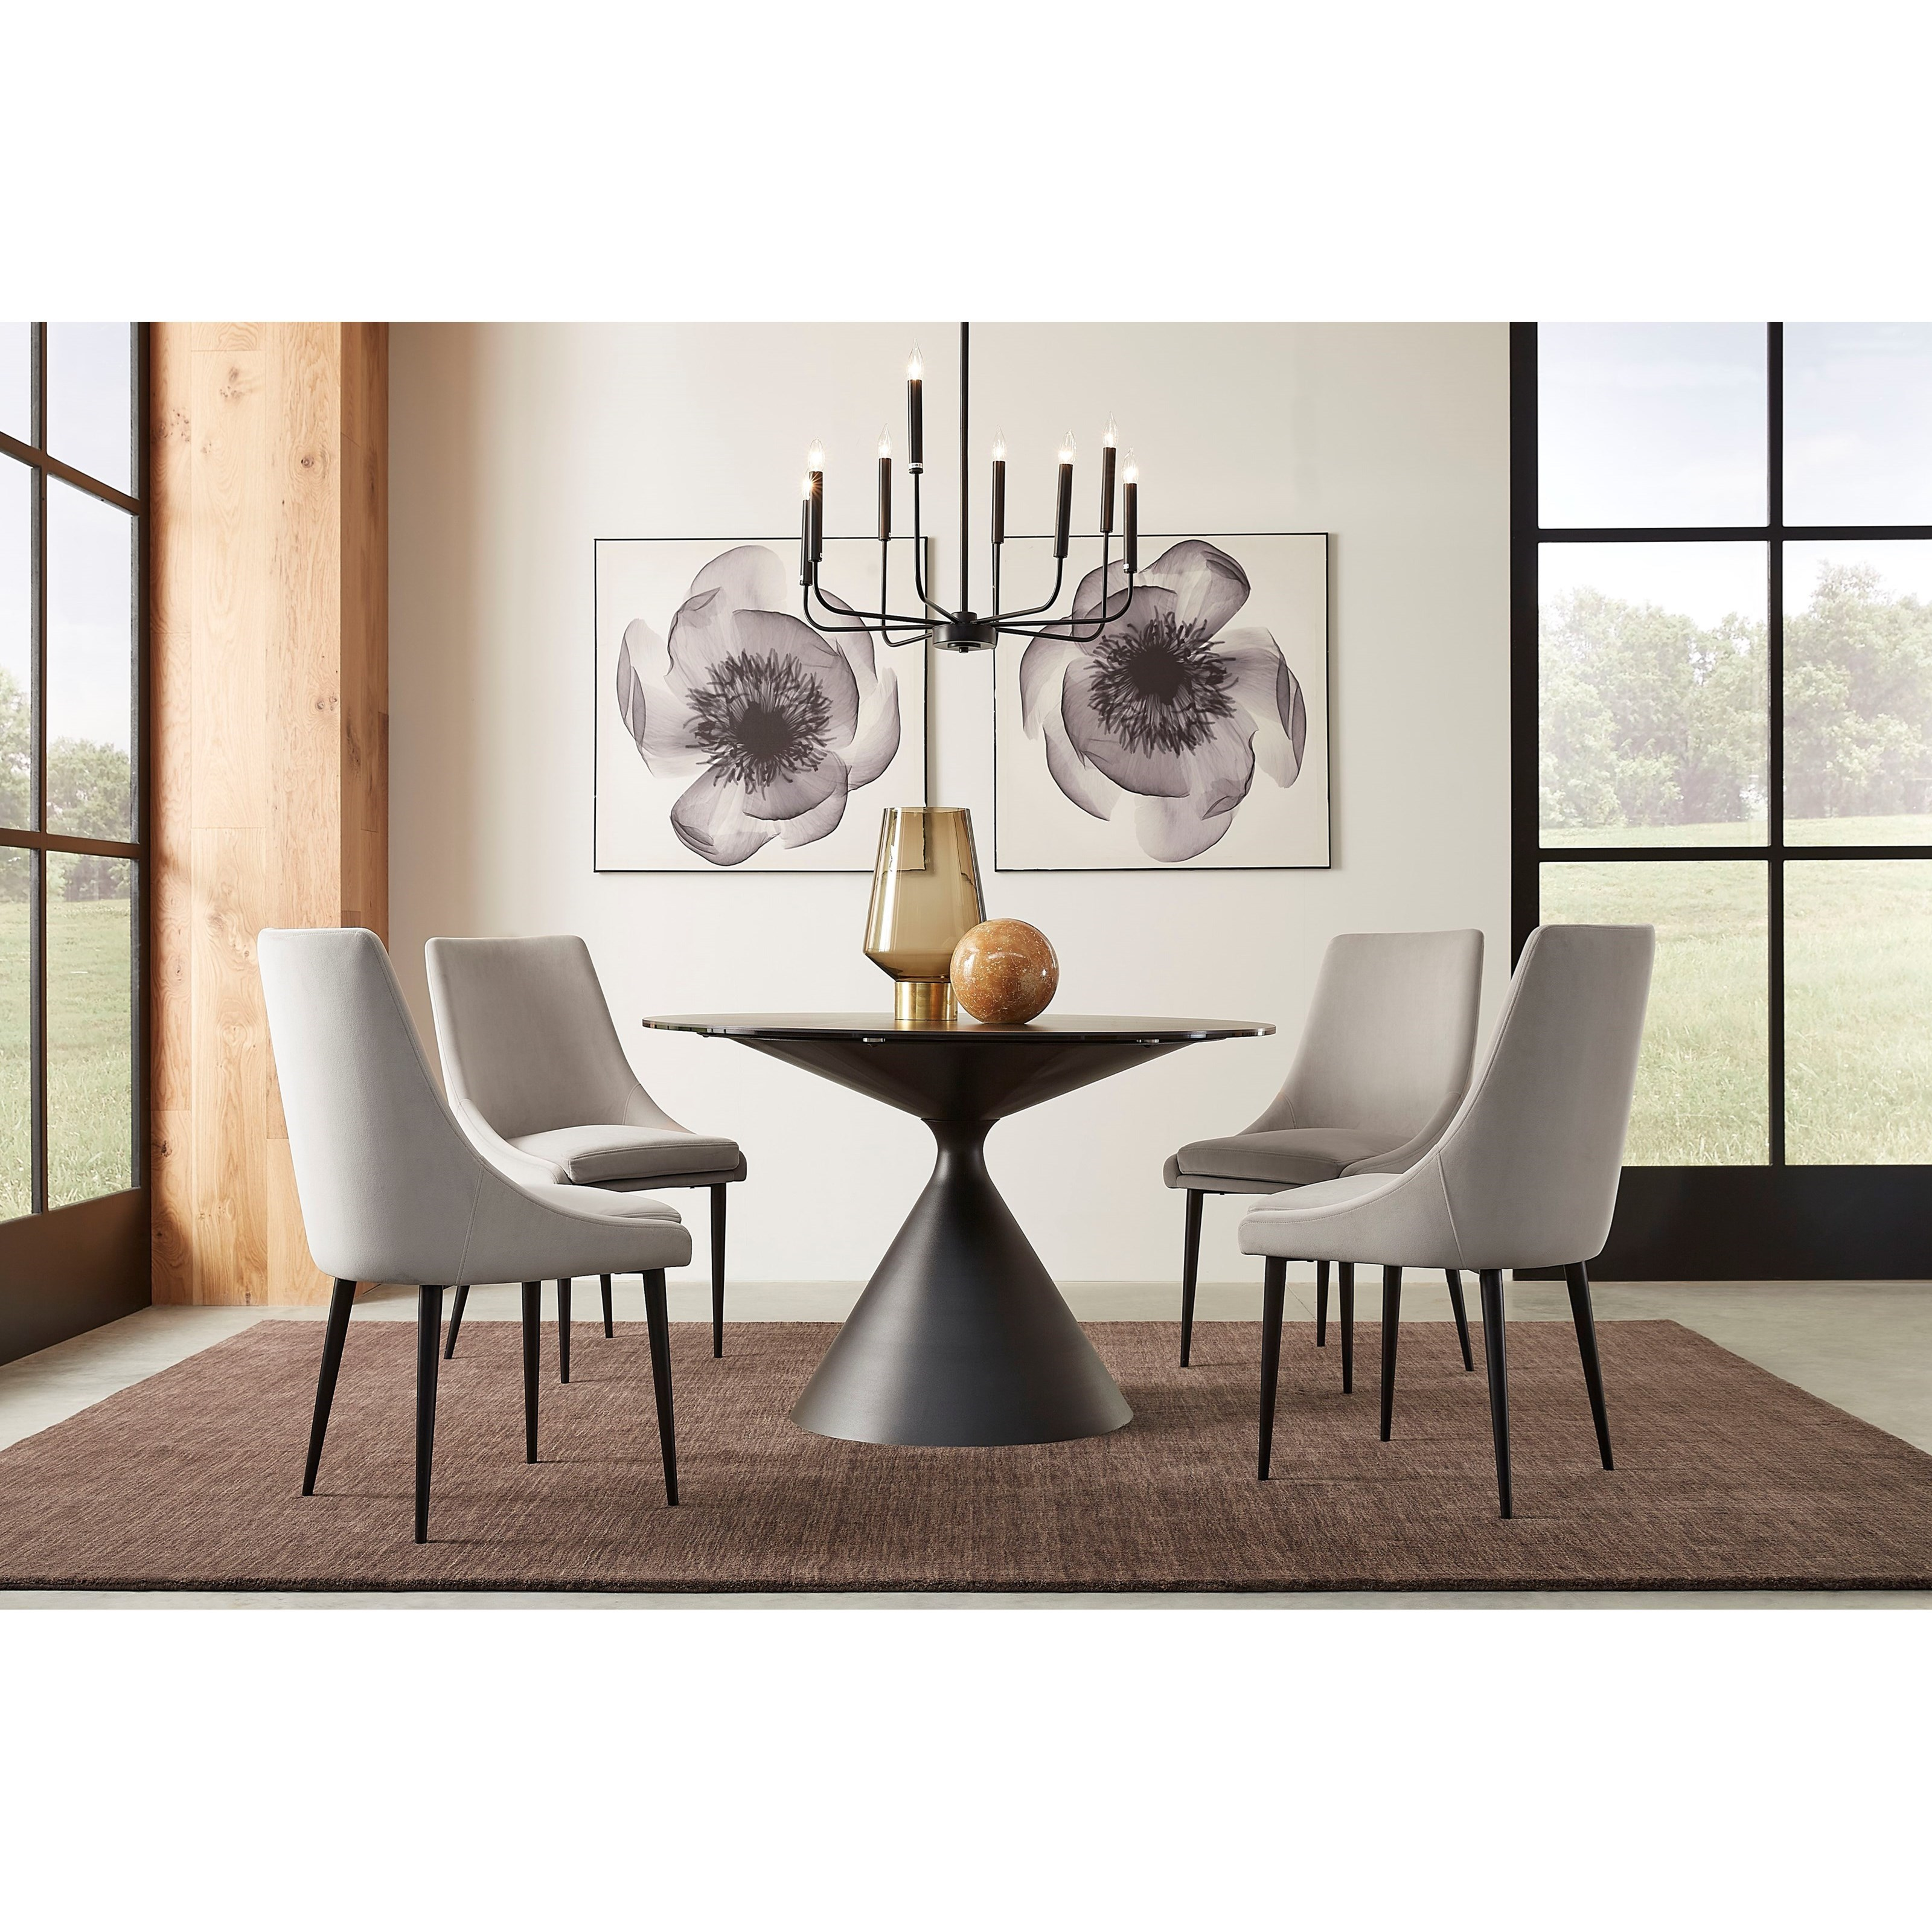 Winston 5-Piece Table and Chair Set by Modus International at A1 Furniture & Mattress